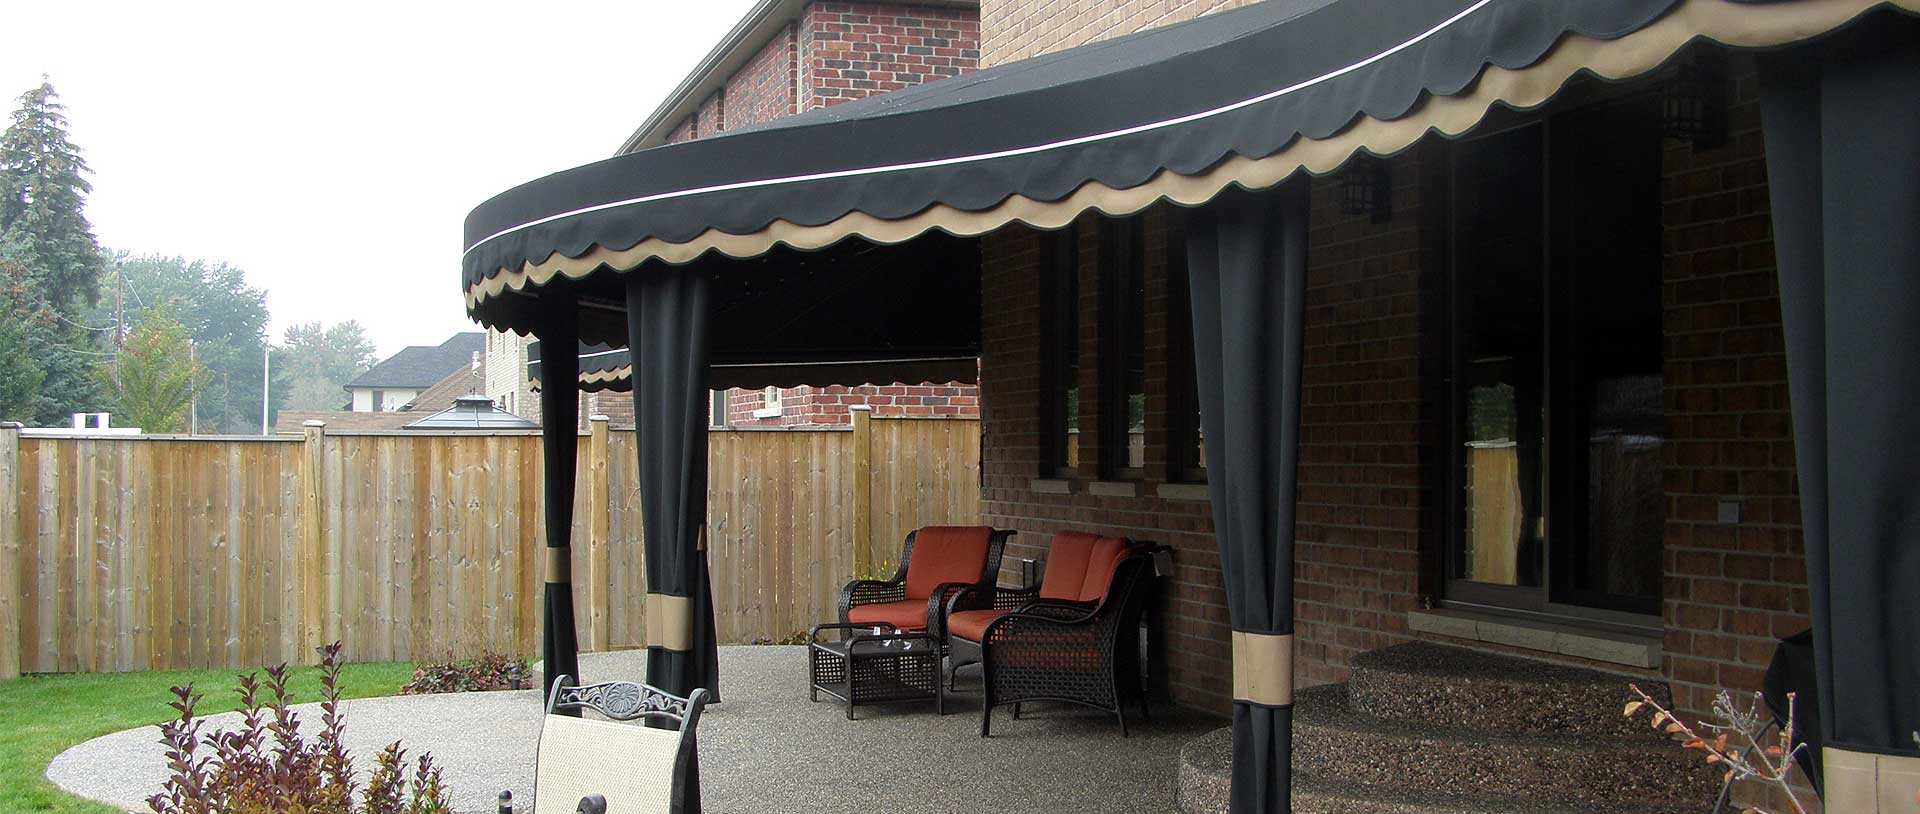 Custom Fabric Awnings